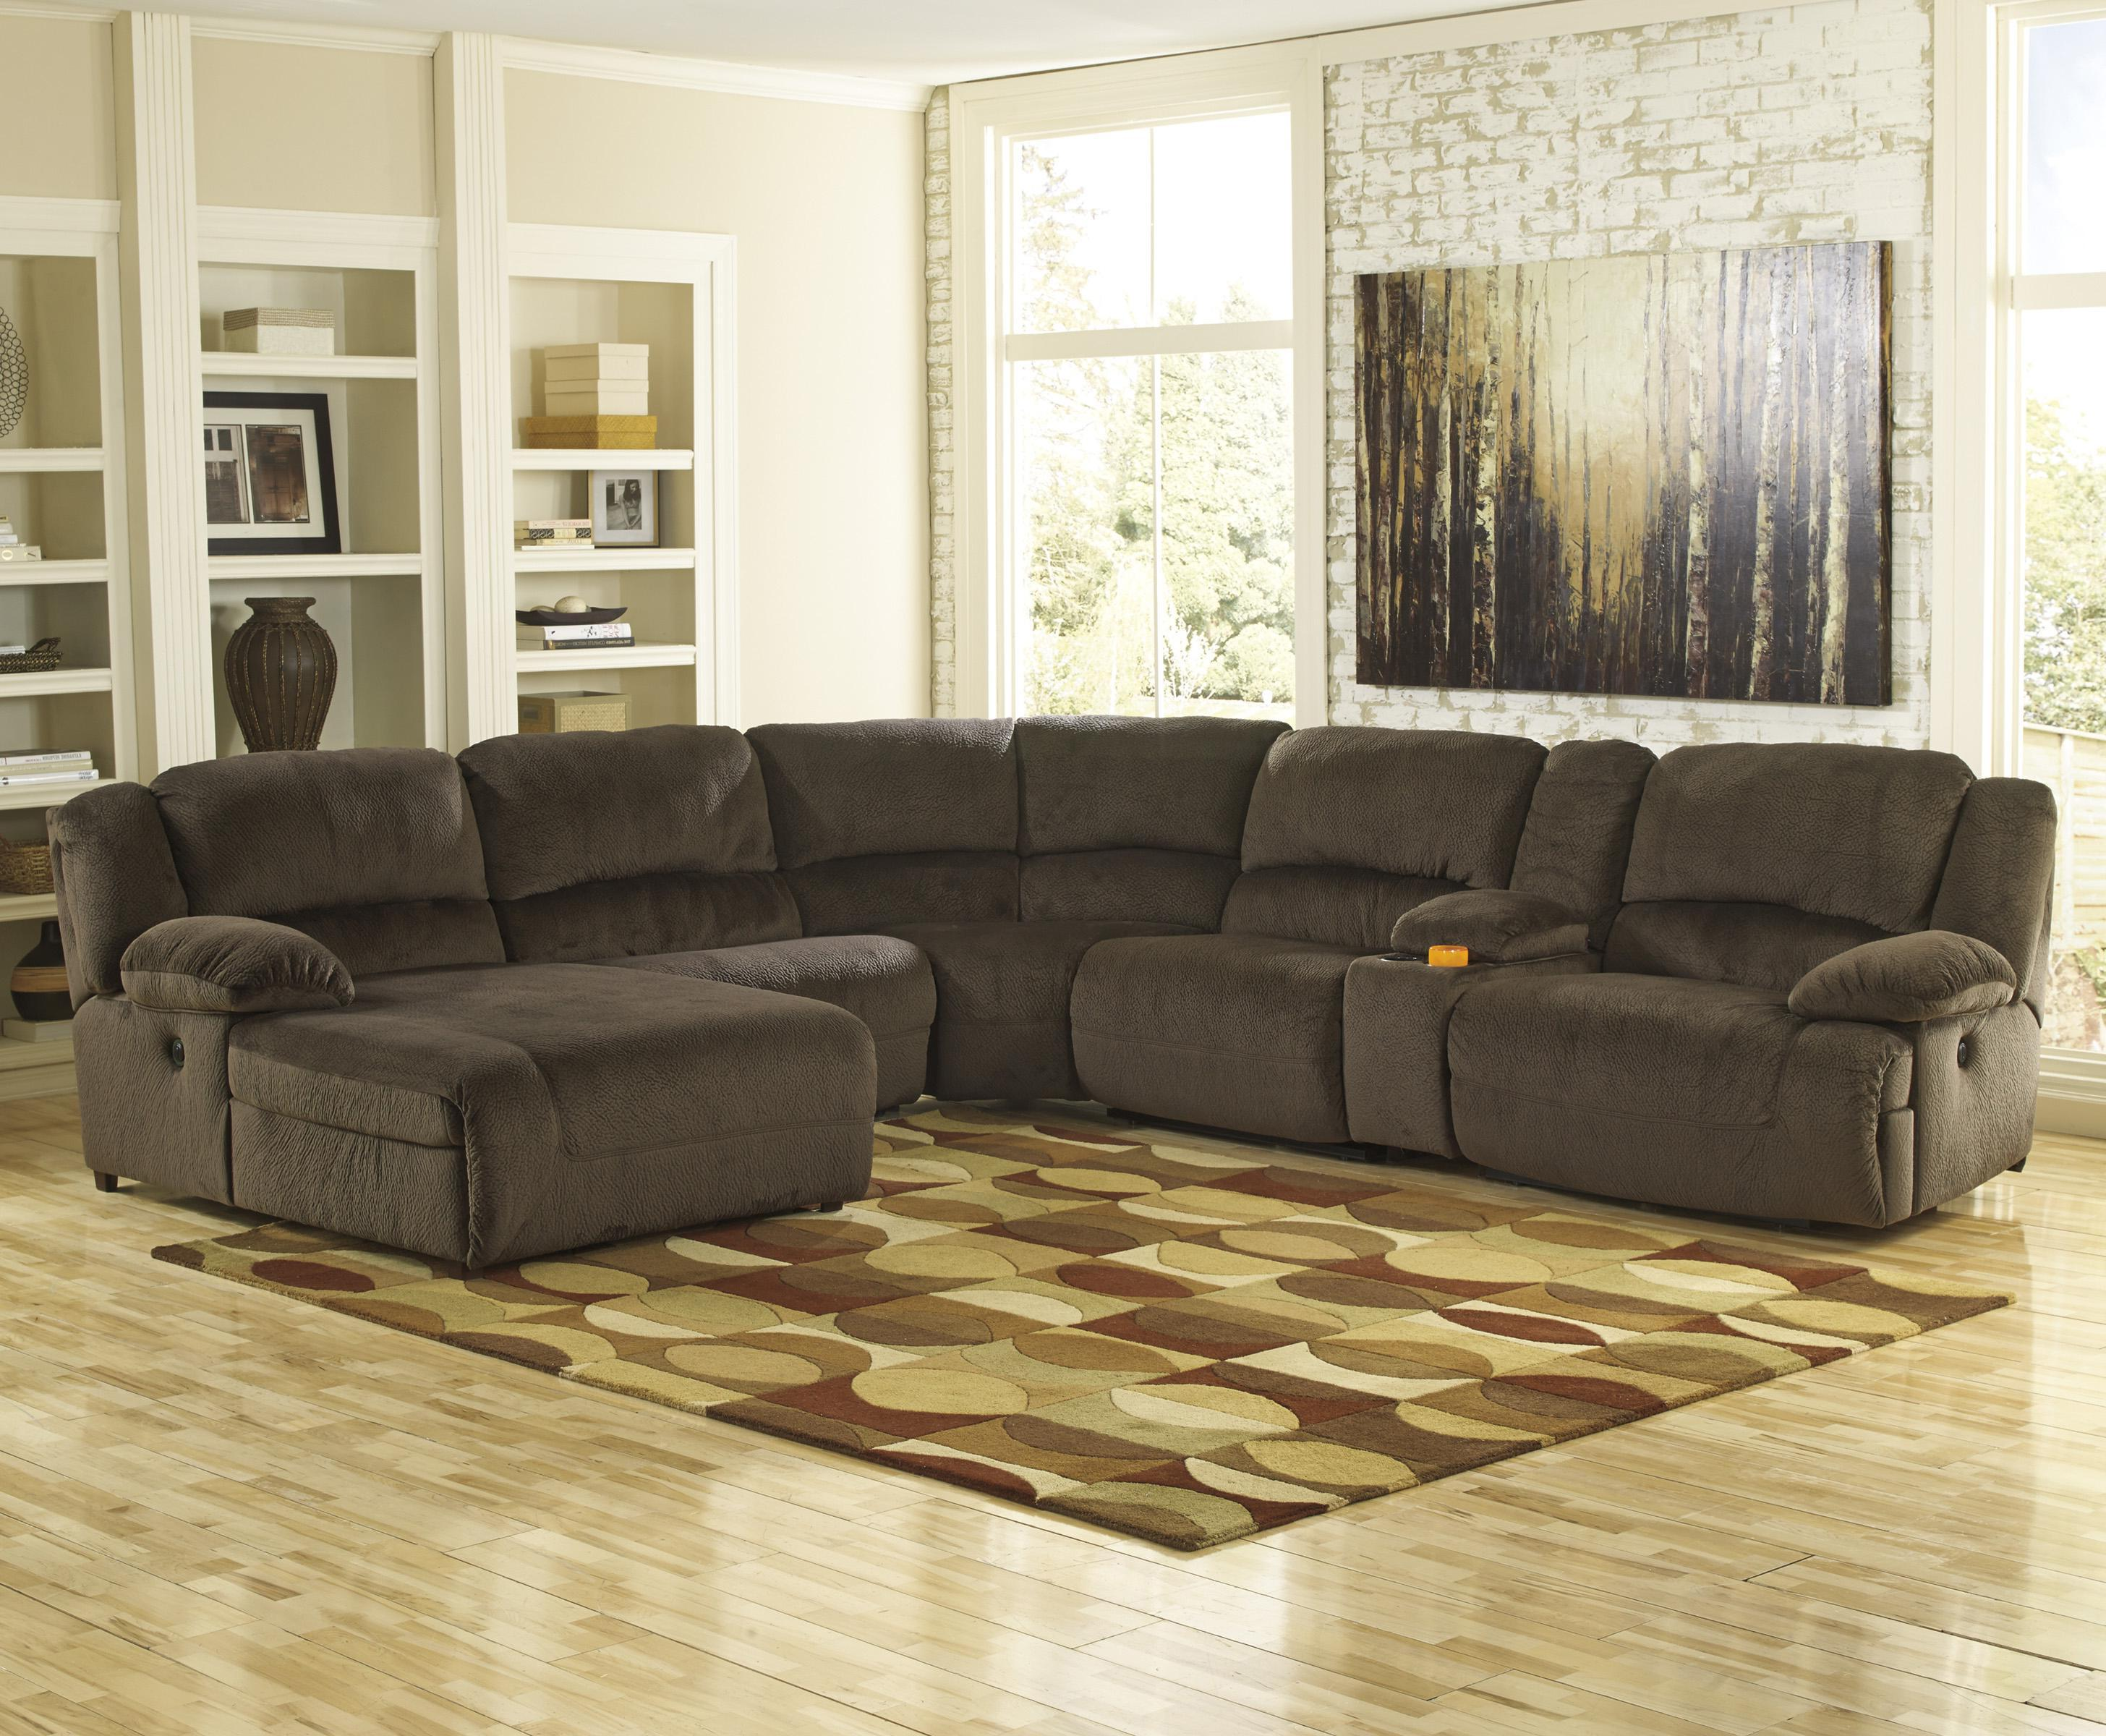 Signature Design By Ashley Toletta Chocolate Power Reclining Sectional With Console Left